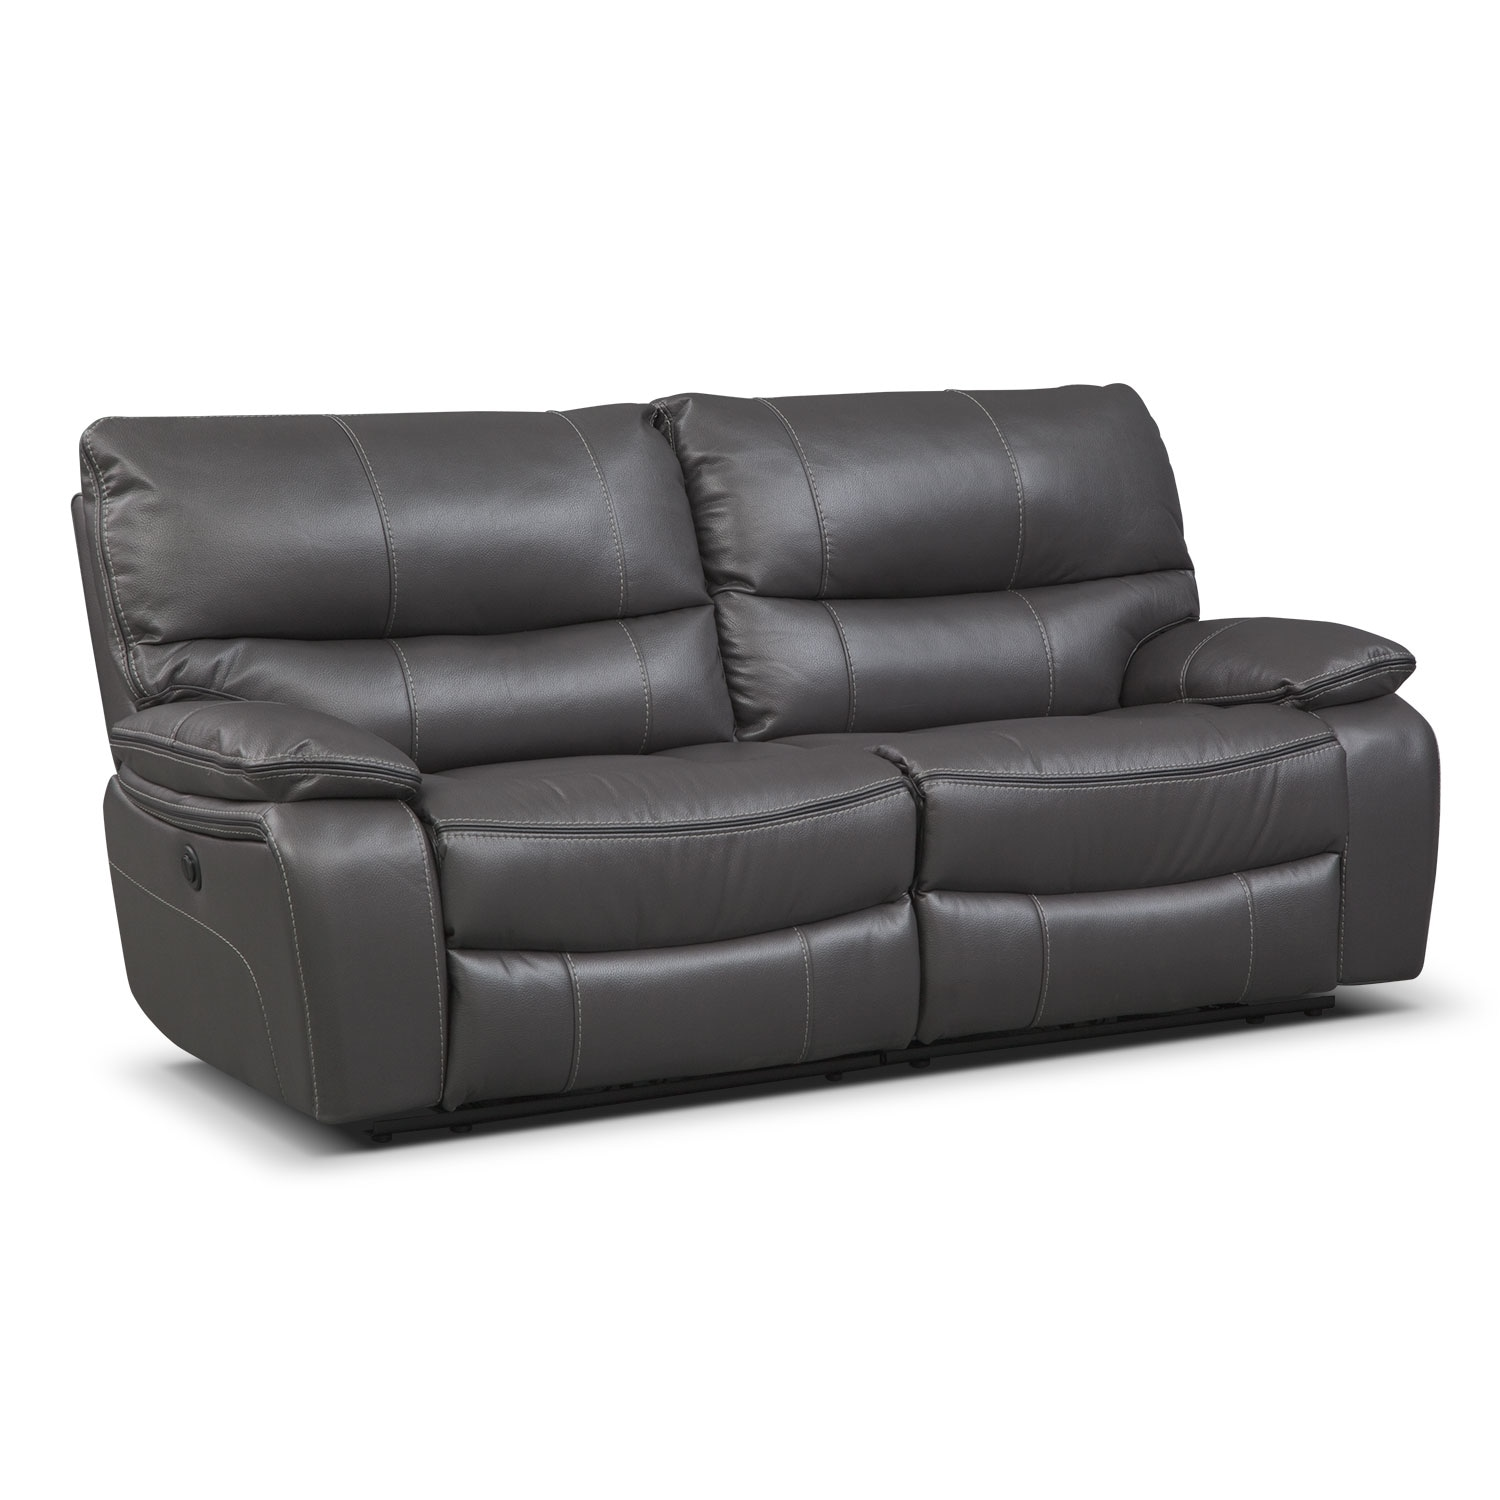 Orlando Power Reclining Sofa | Value City Furniture and Mattresses